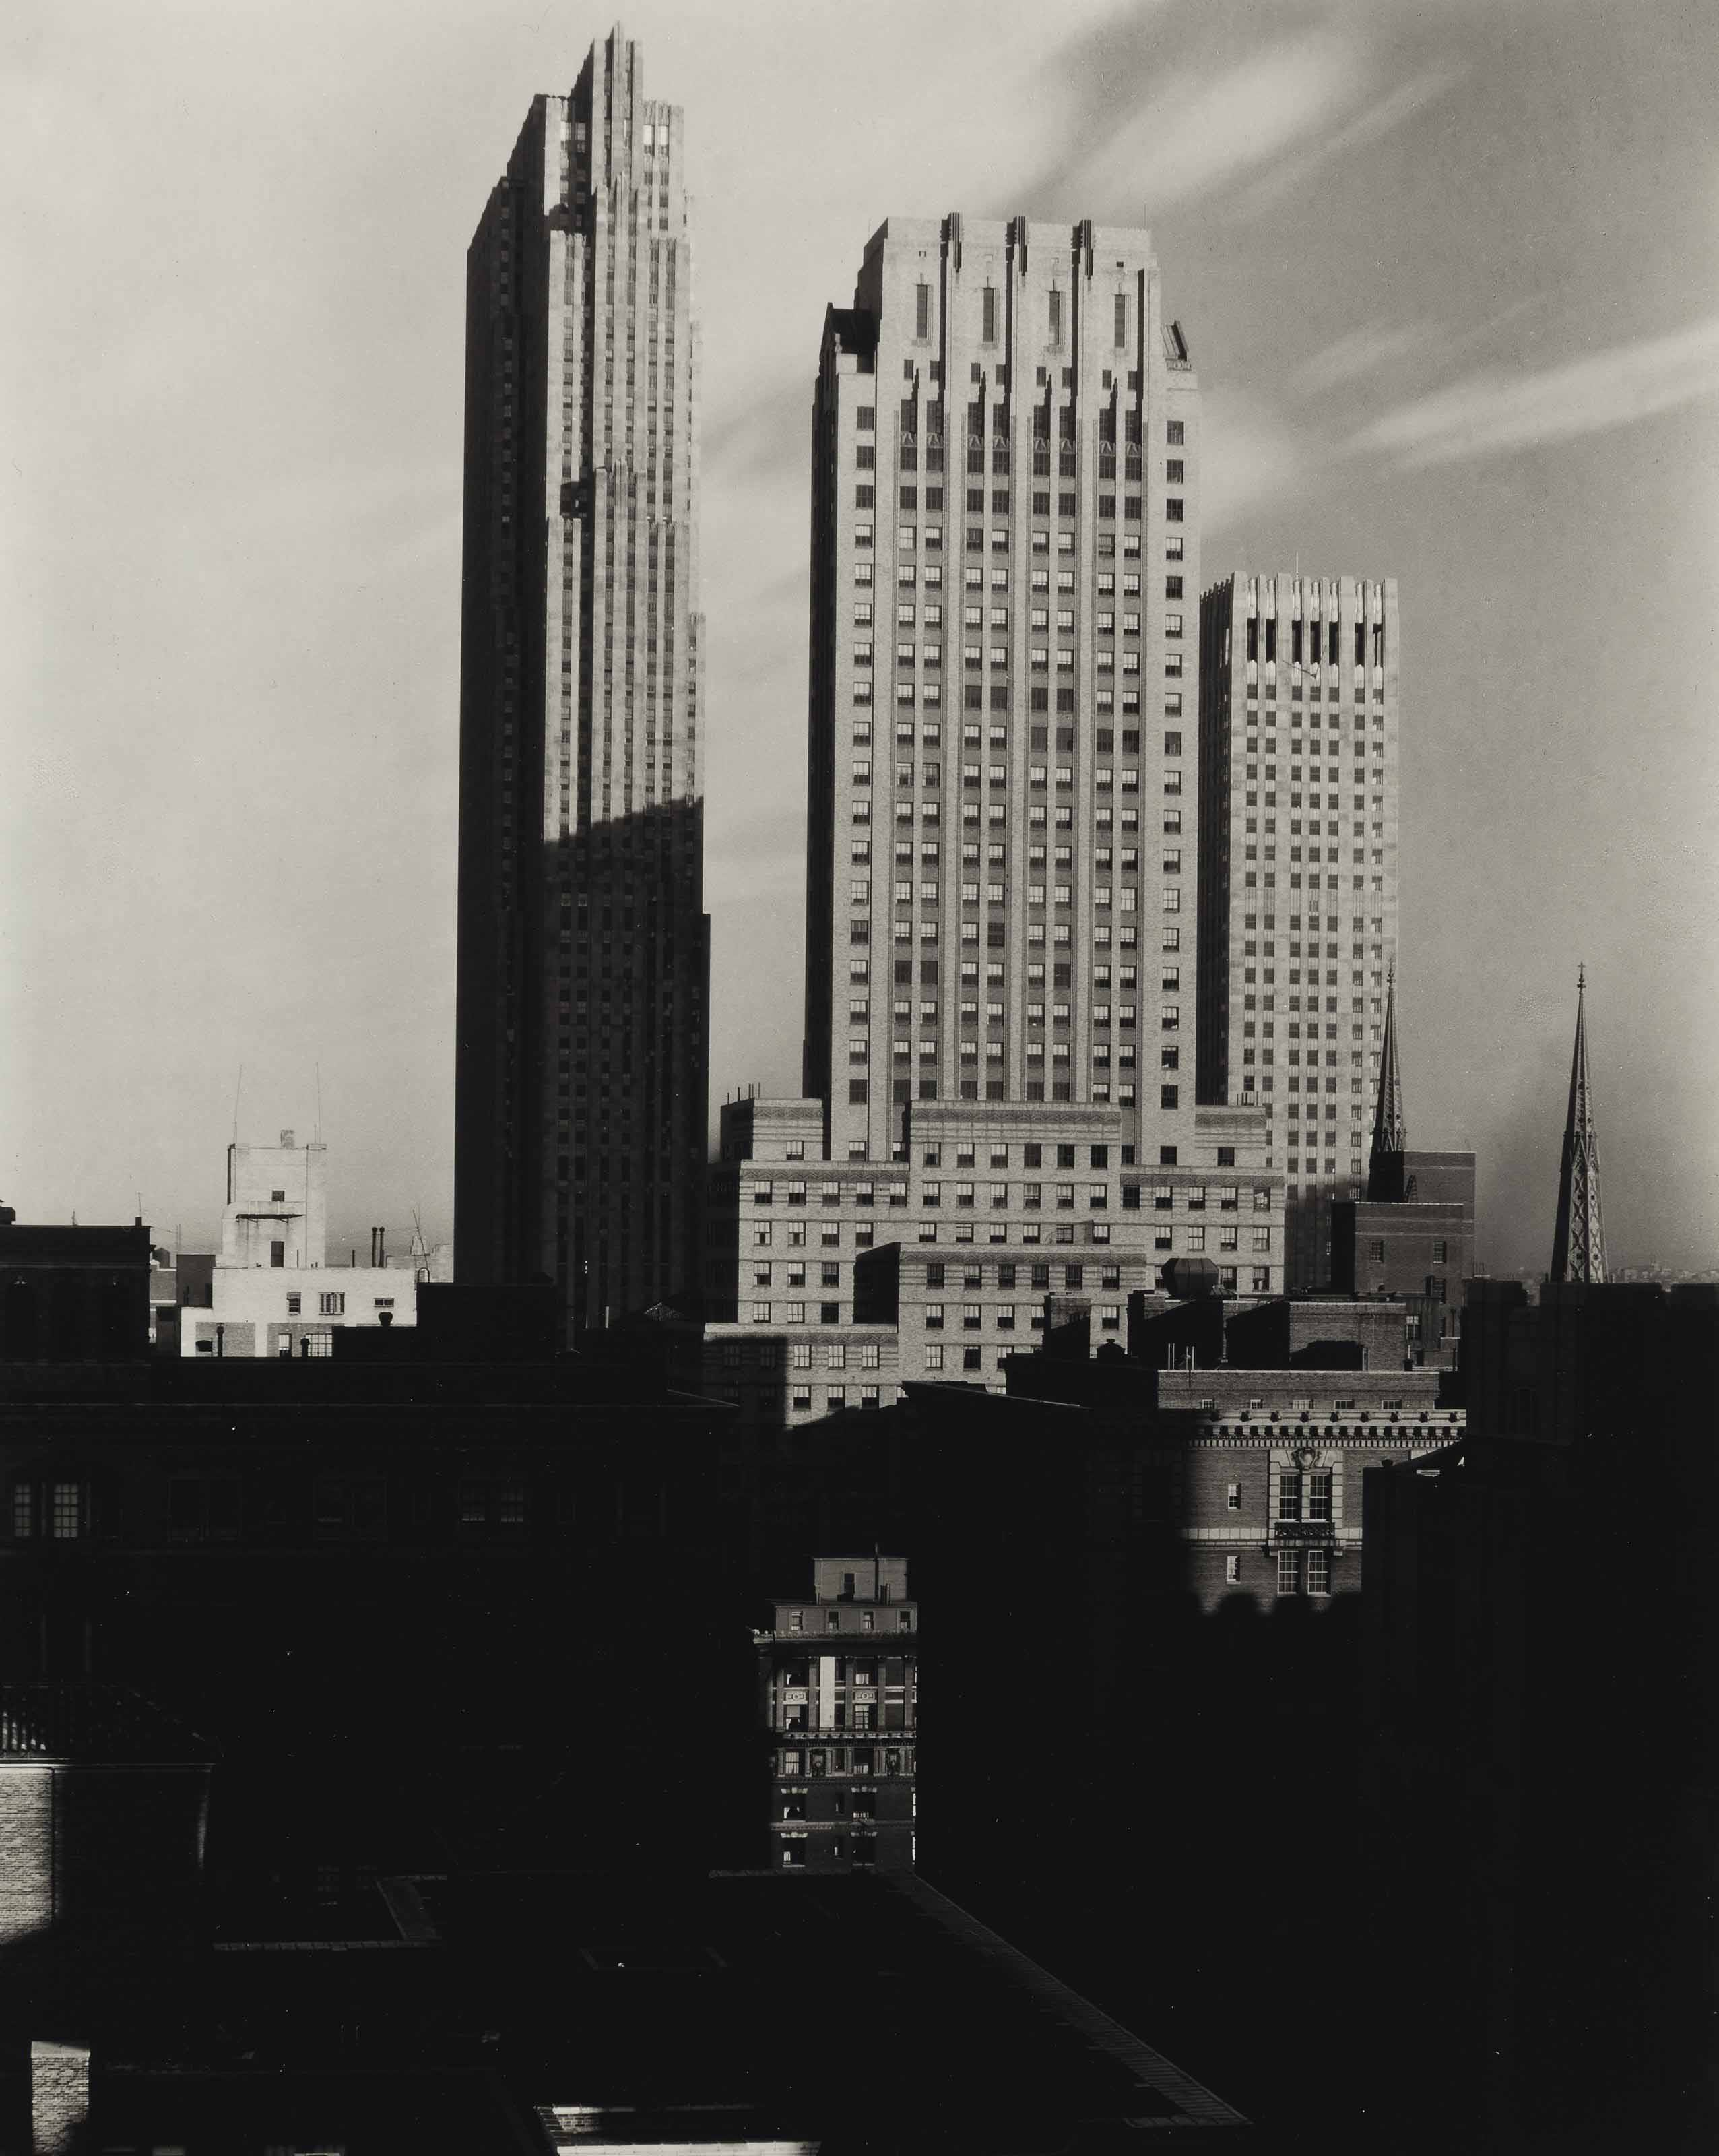 New York, from the Shelton, 1935